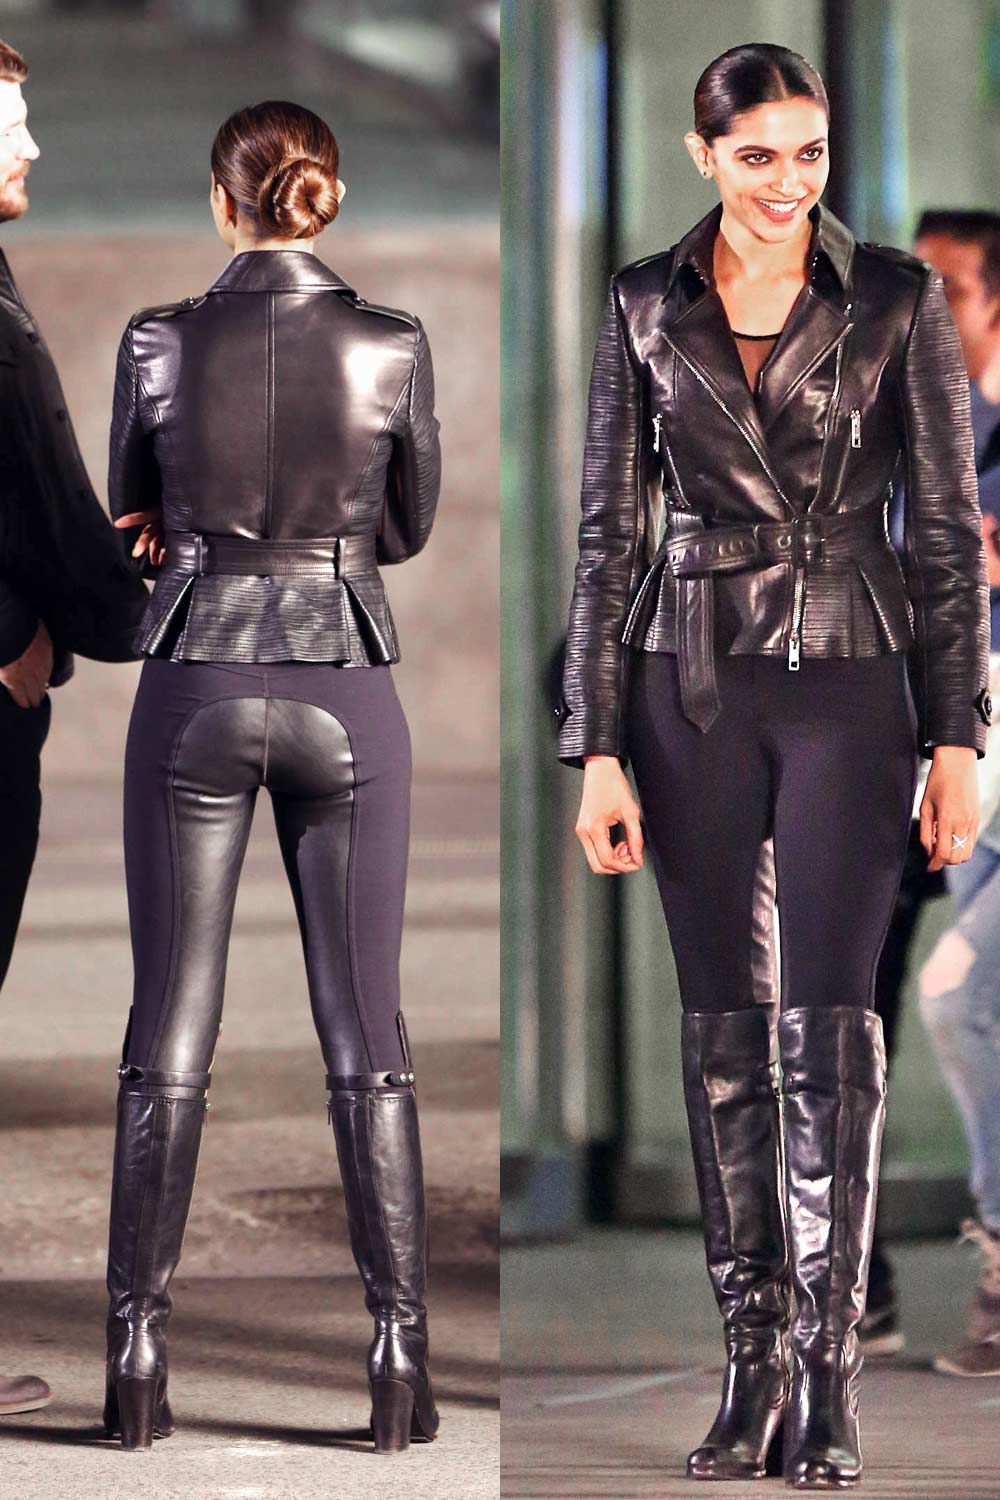 Dominant Leather Gorgeous Women In Leather